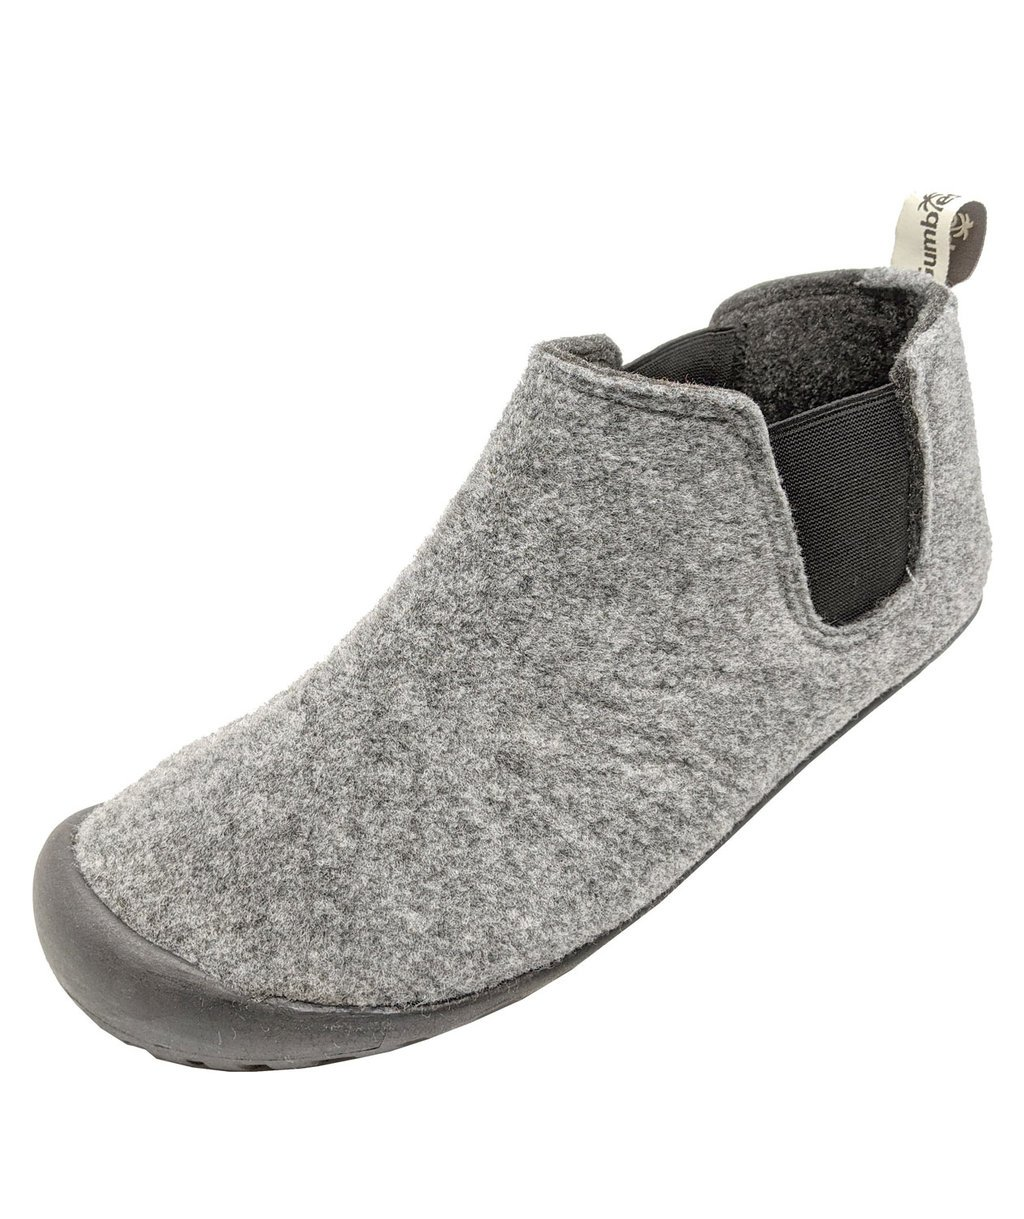 Gumbies Brumby Slipper Boot hjemmesko, Grey/Charcoal